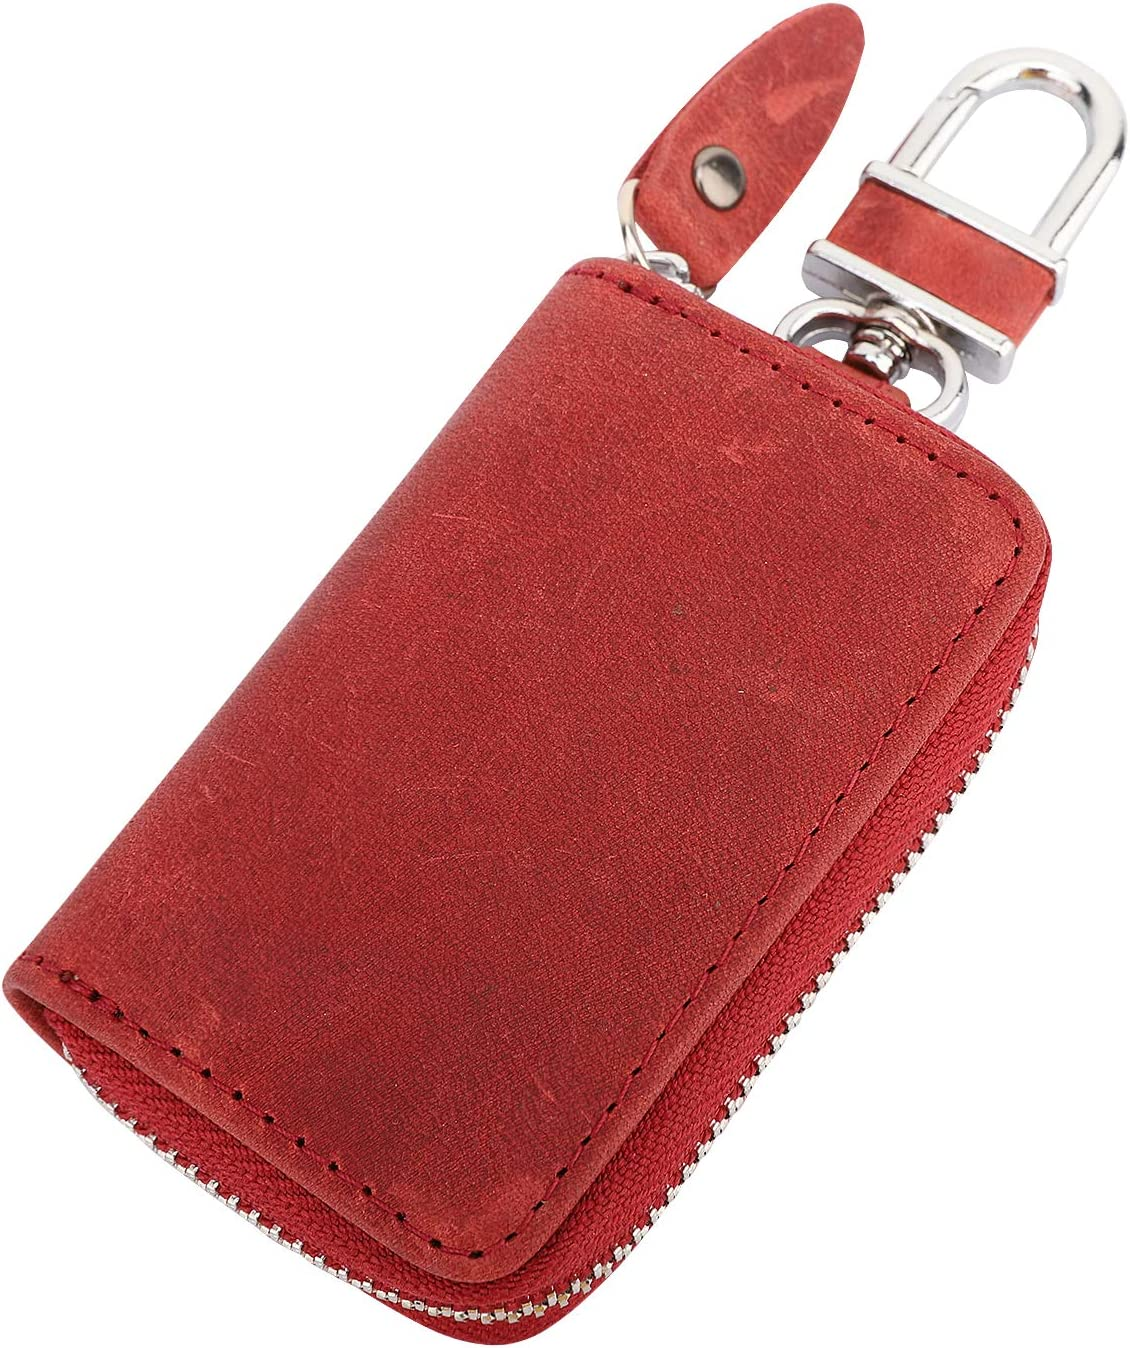 MoKo Car Key Case Wine Red Support Remote Control Retro Wax Leather Car Smart Keychain Coin Fob Punch Holder Wear-resistant Key Zipper Bag with Metal Hook